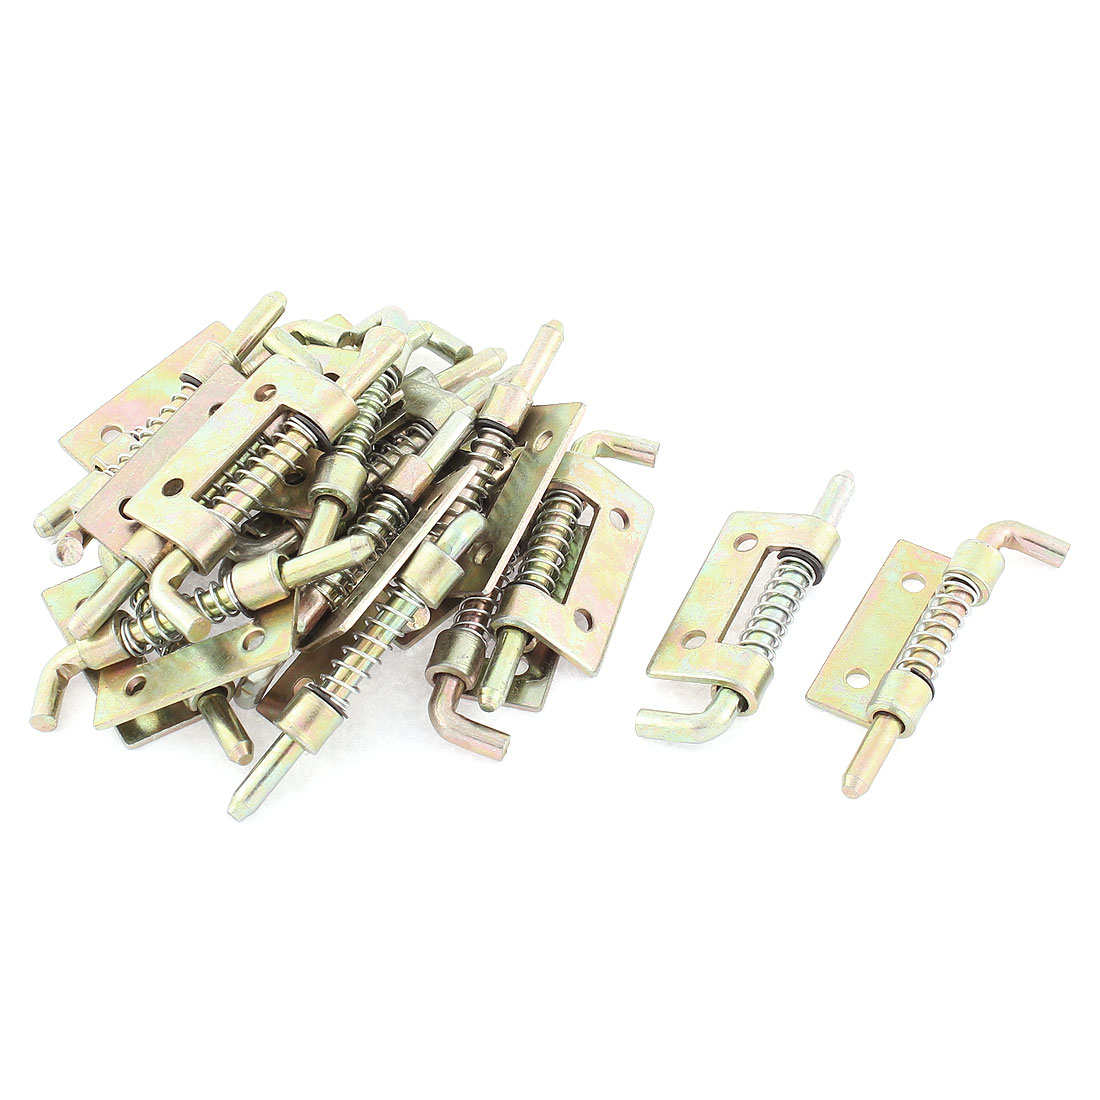 20pcs Bronze Tone Spring Loaded Door Safety Barrel Bolt Latch Lock